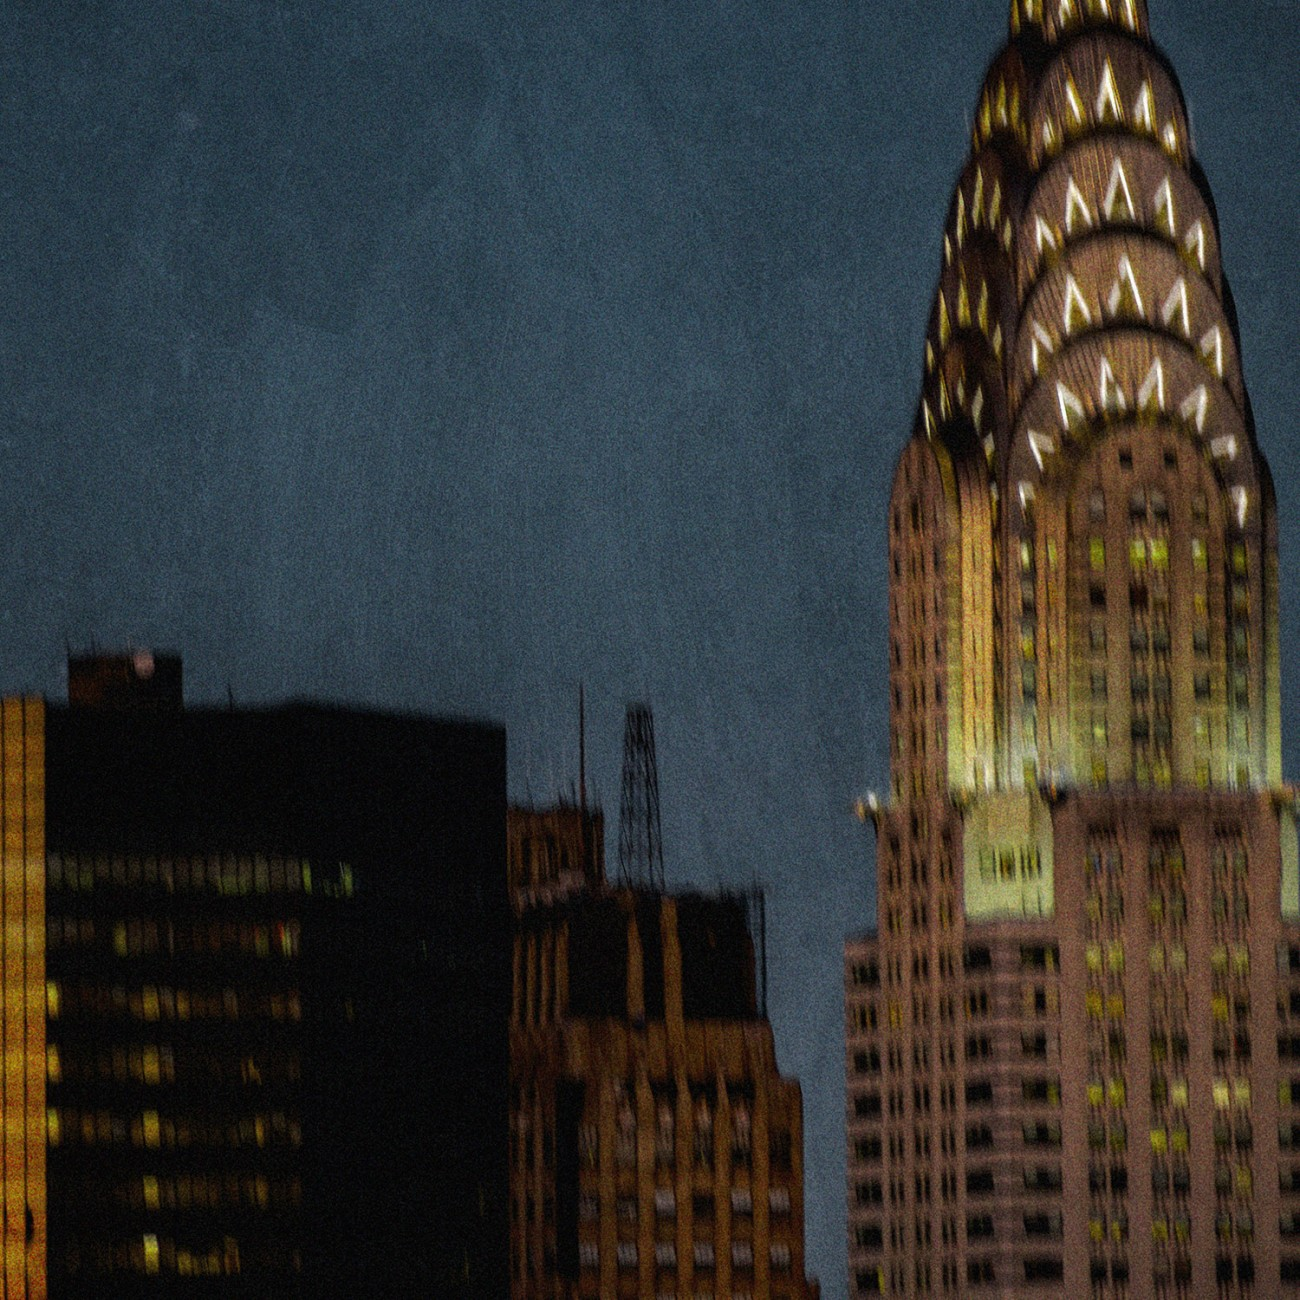 Chrysler Building at dusk, NY, 2015